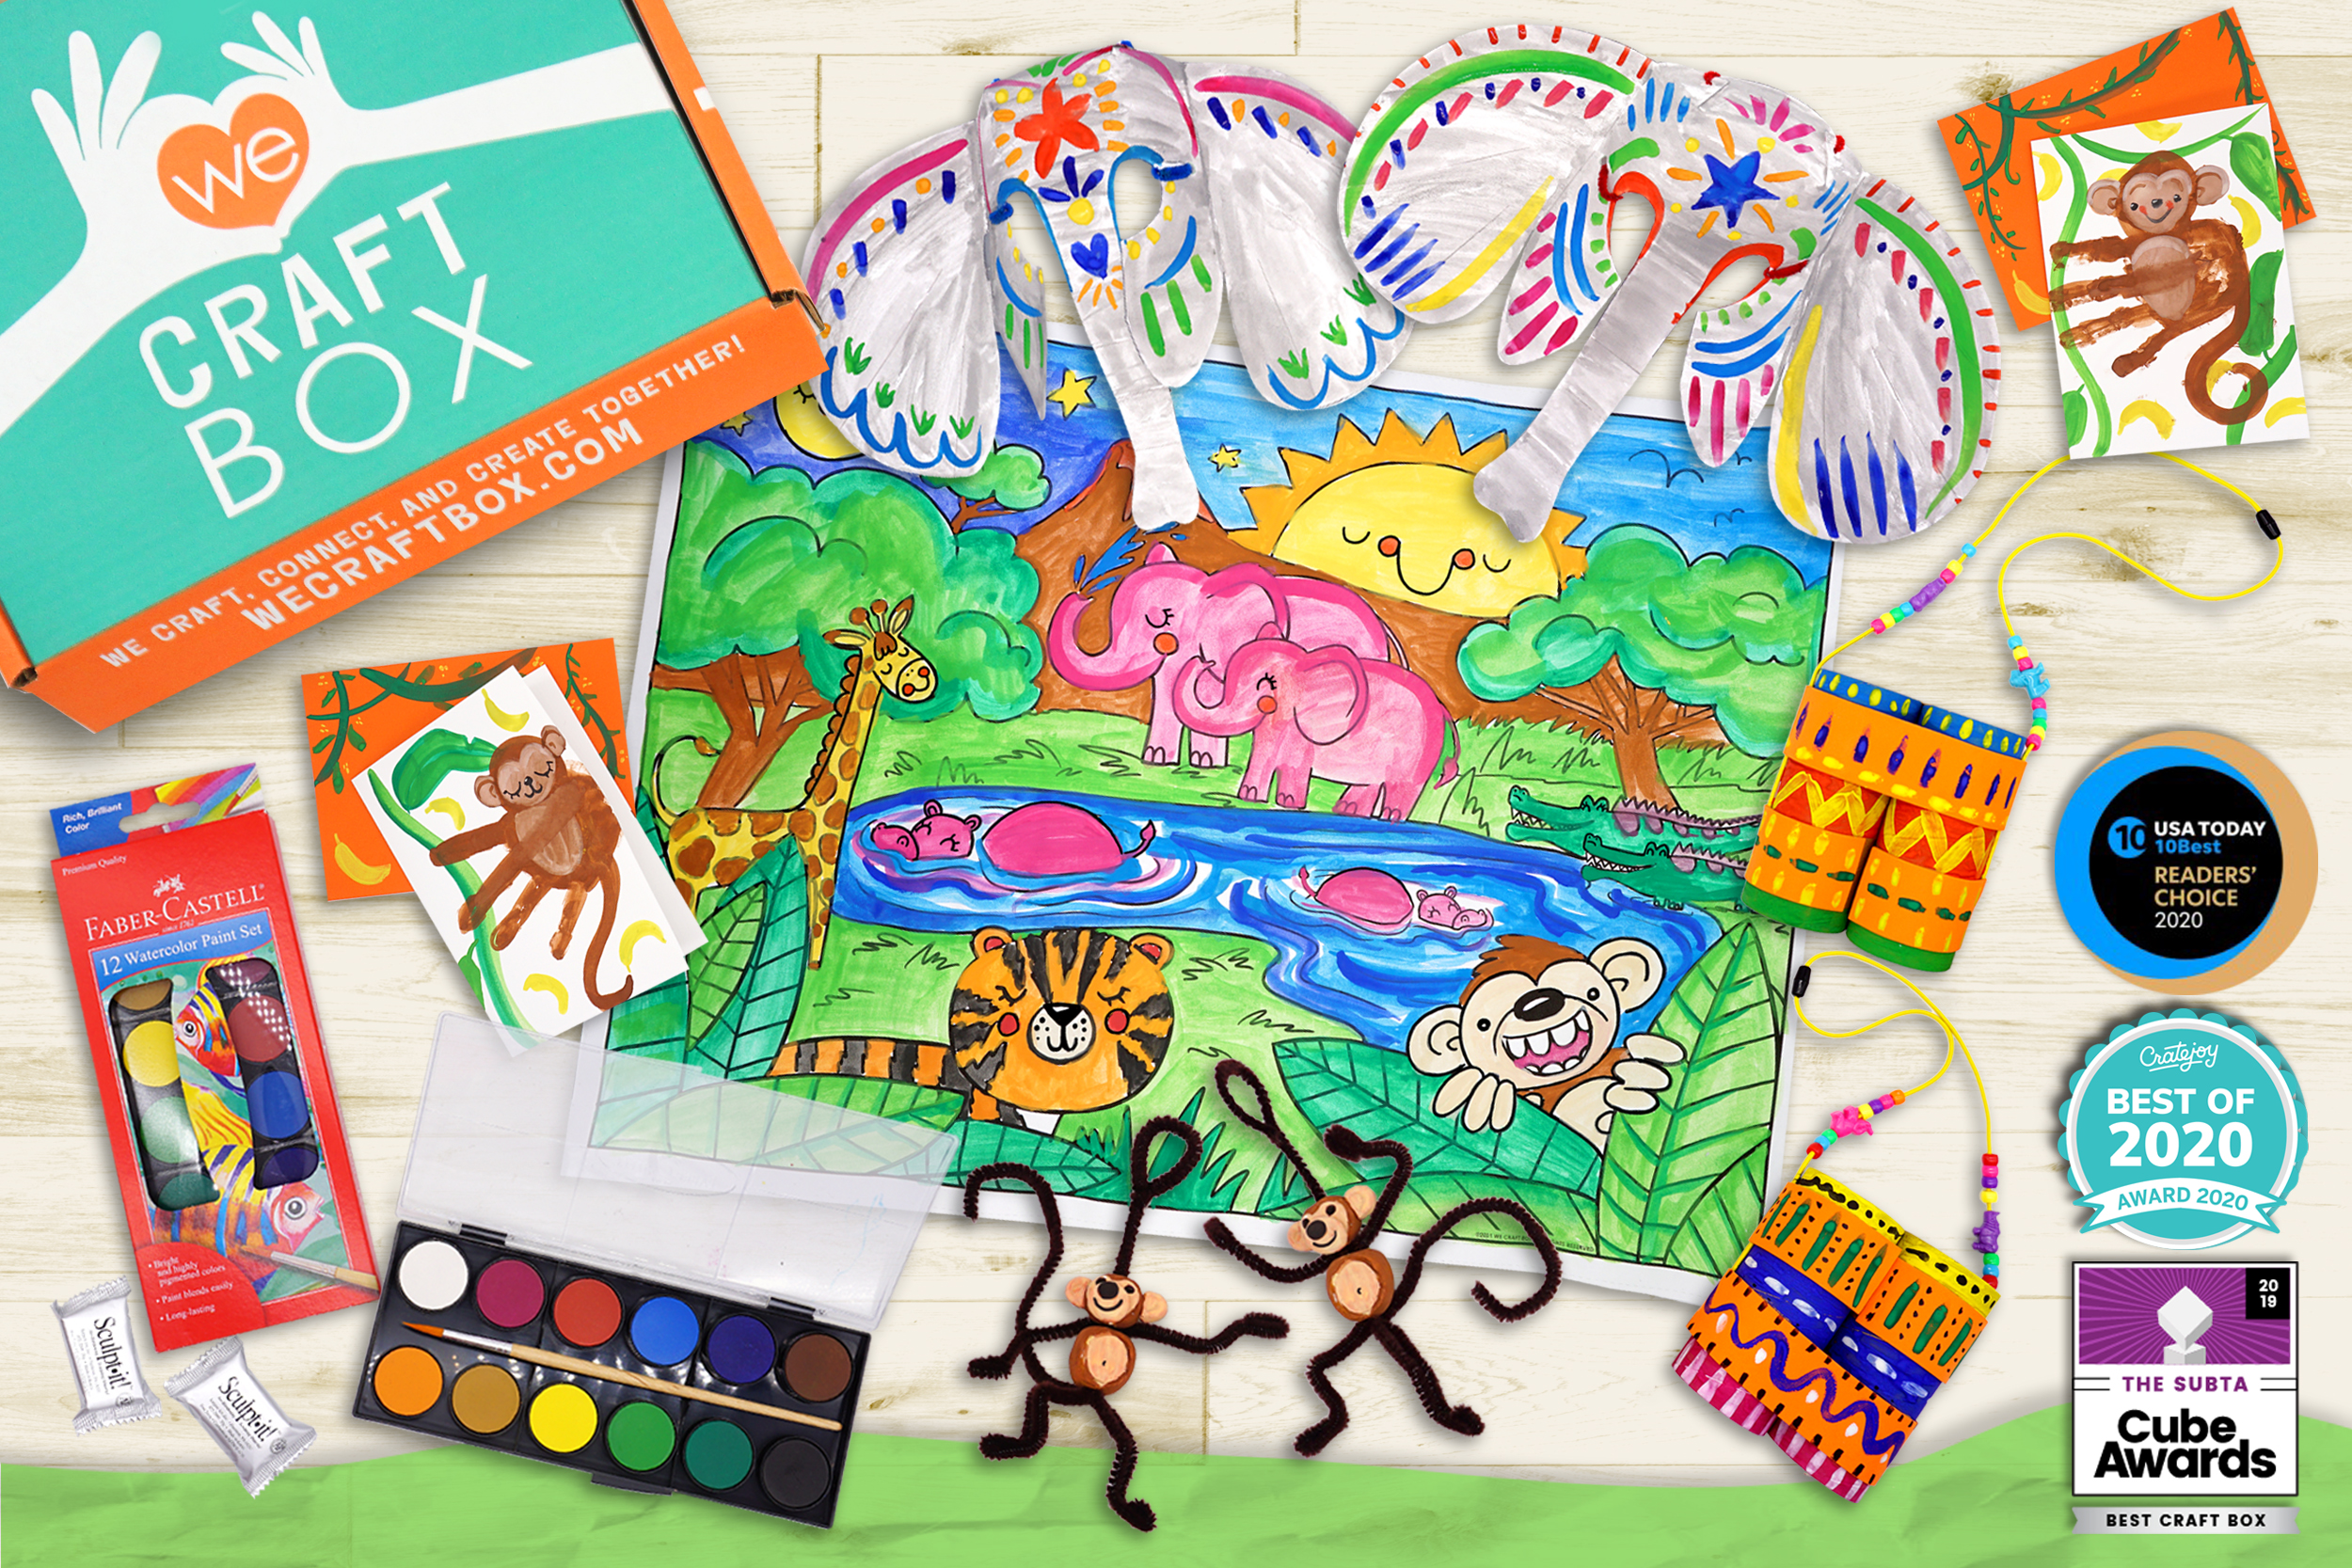 Dinosaur arts and crafts for kids from the We Craft Subscription box.